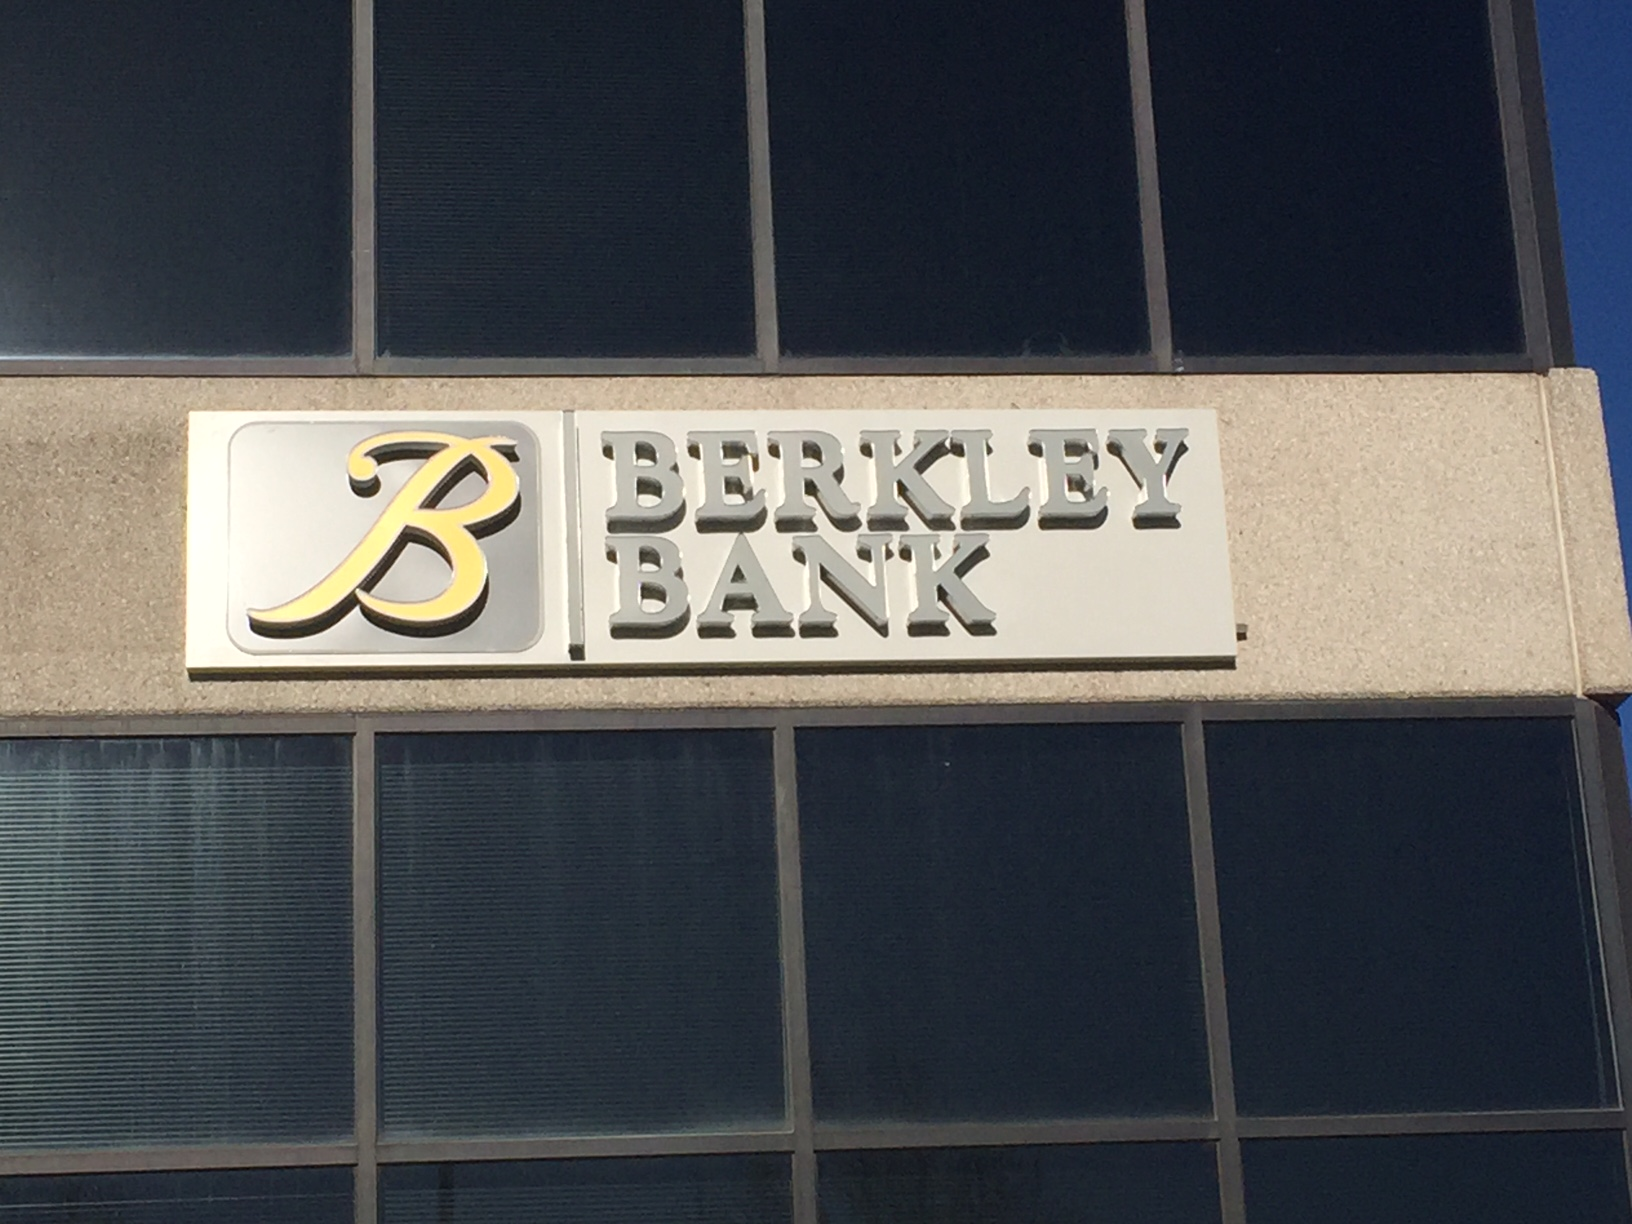 BERKLEY BANK DENVER